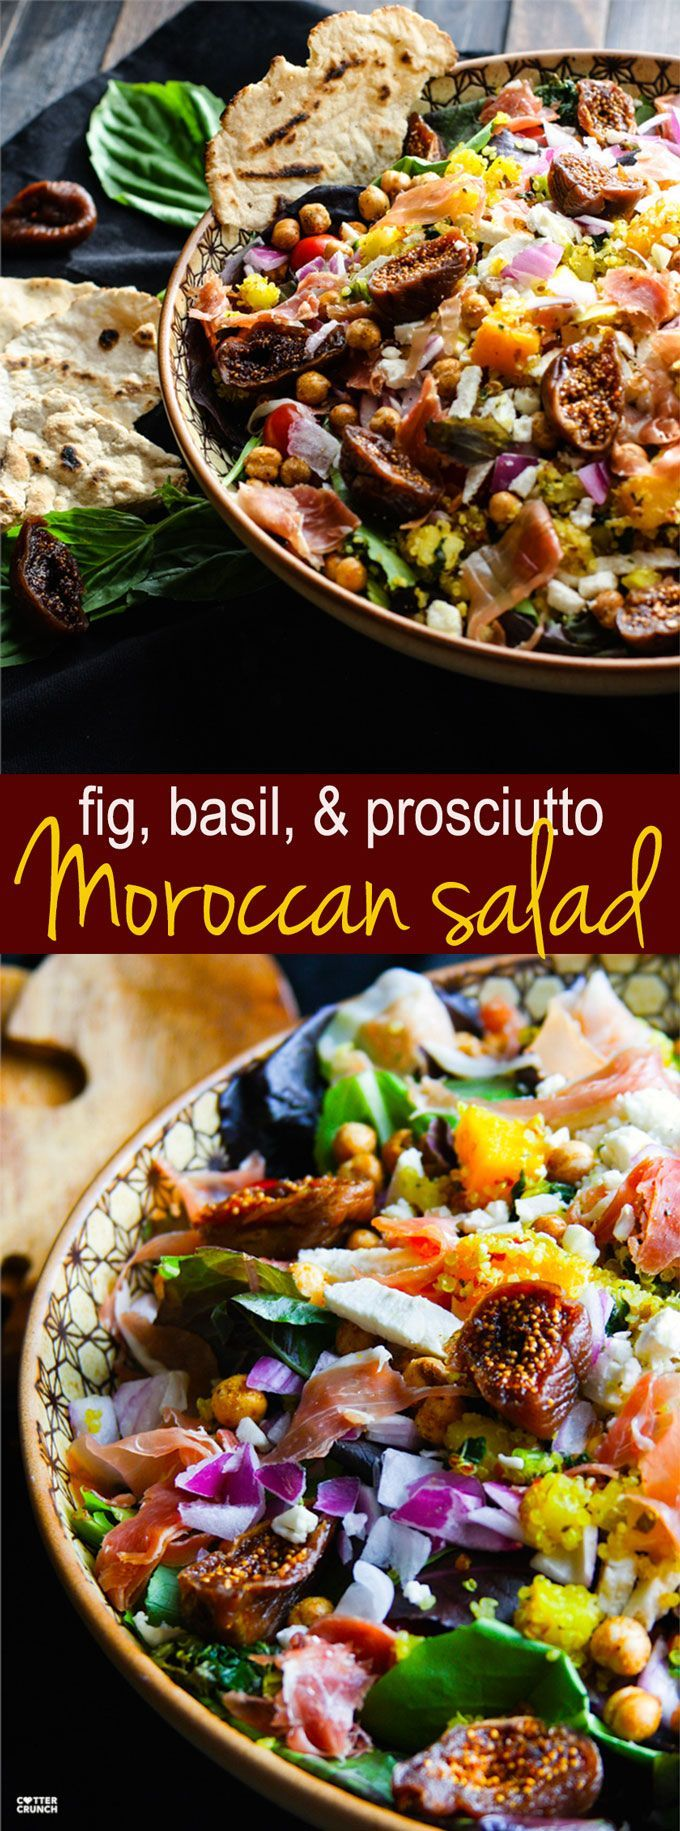 Gluten free fig, basil, and prosciutto Moroccan salad! This healthy cultural salad is far from boring. Perfect flavor combinations, including sweet and savory spices, and layers of dried fruit and vegetables. Great by itself or with a main protein like fish or chicken